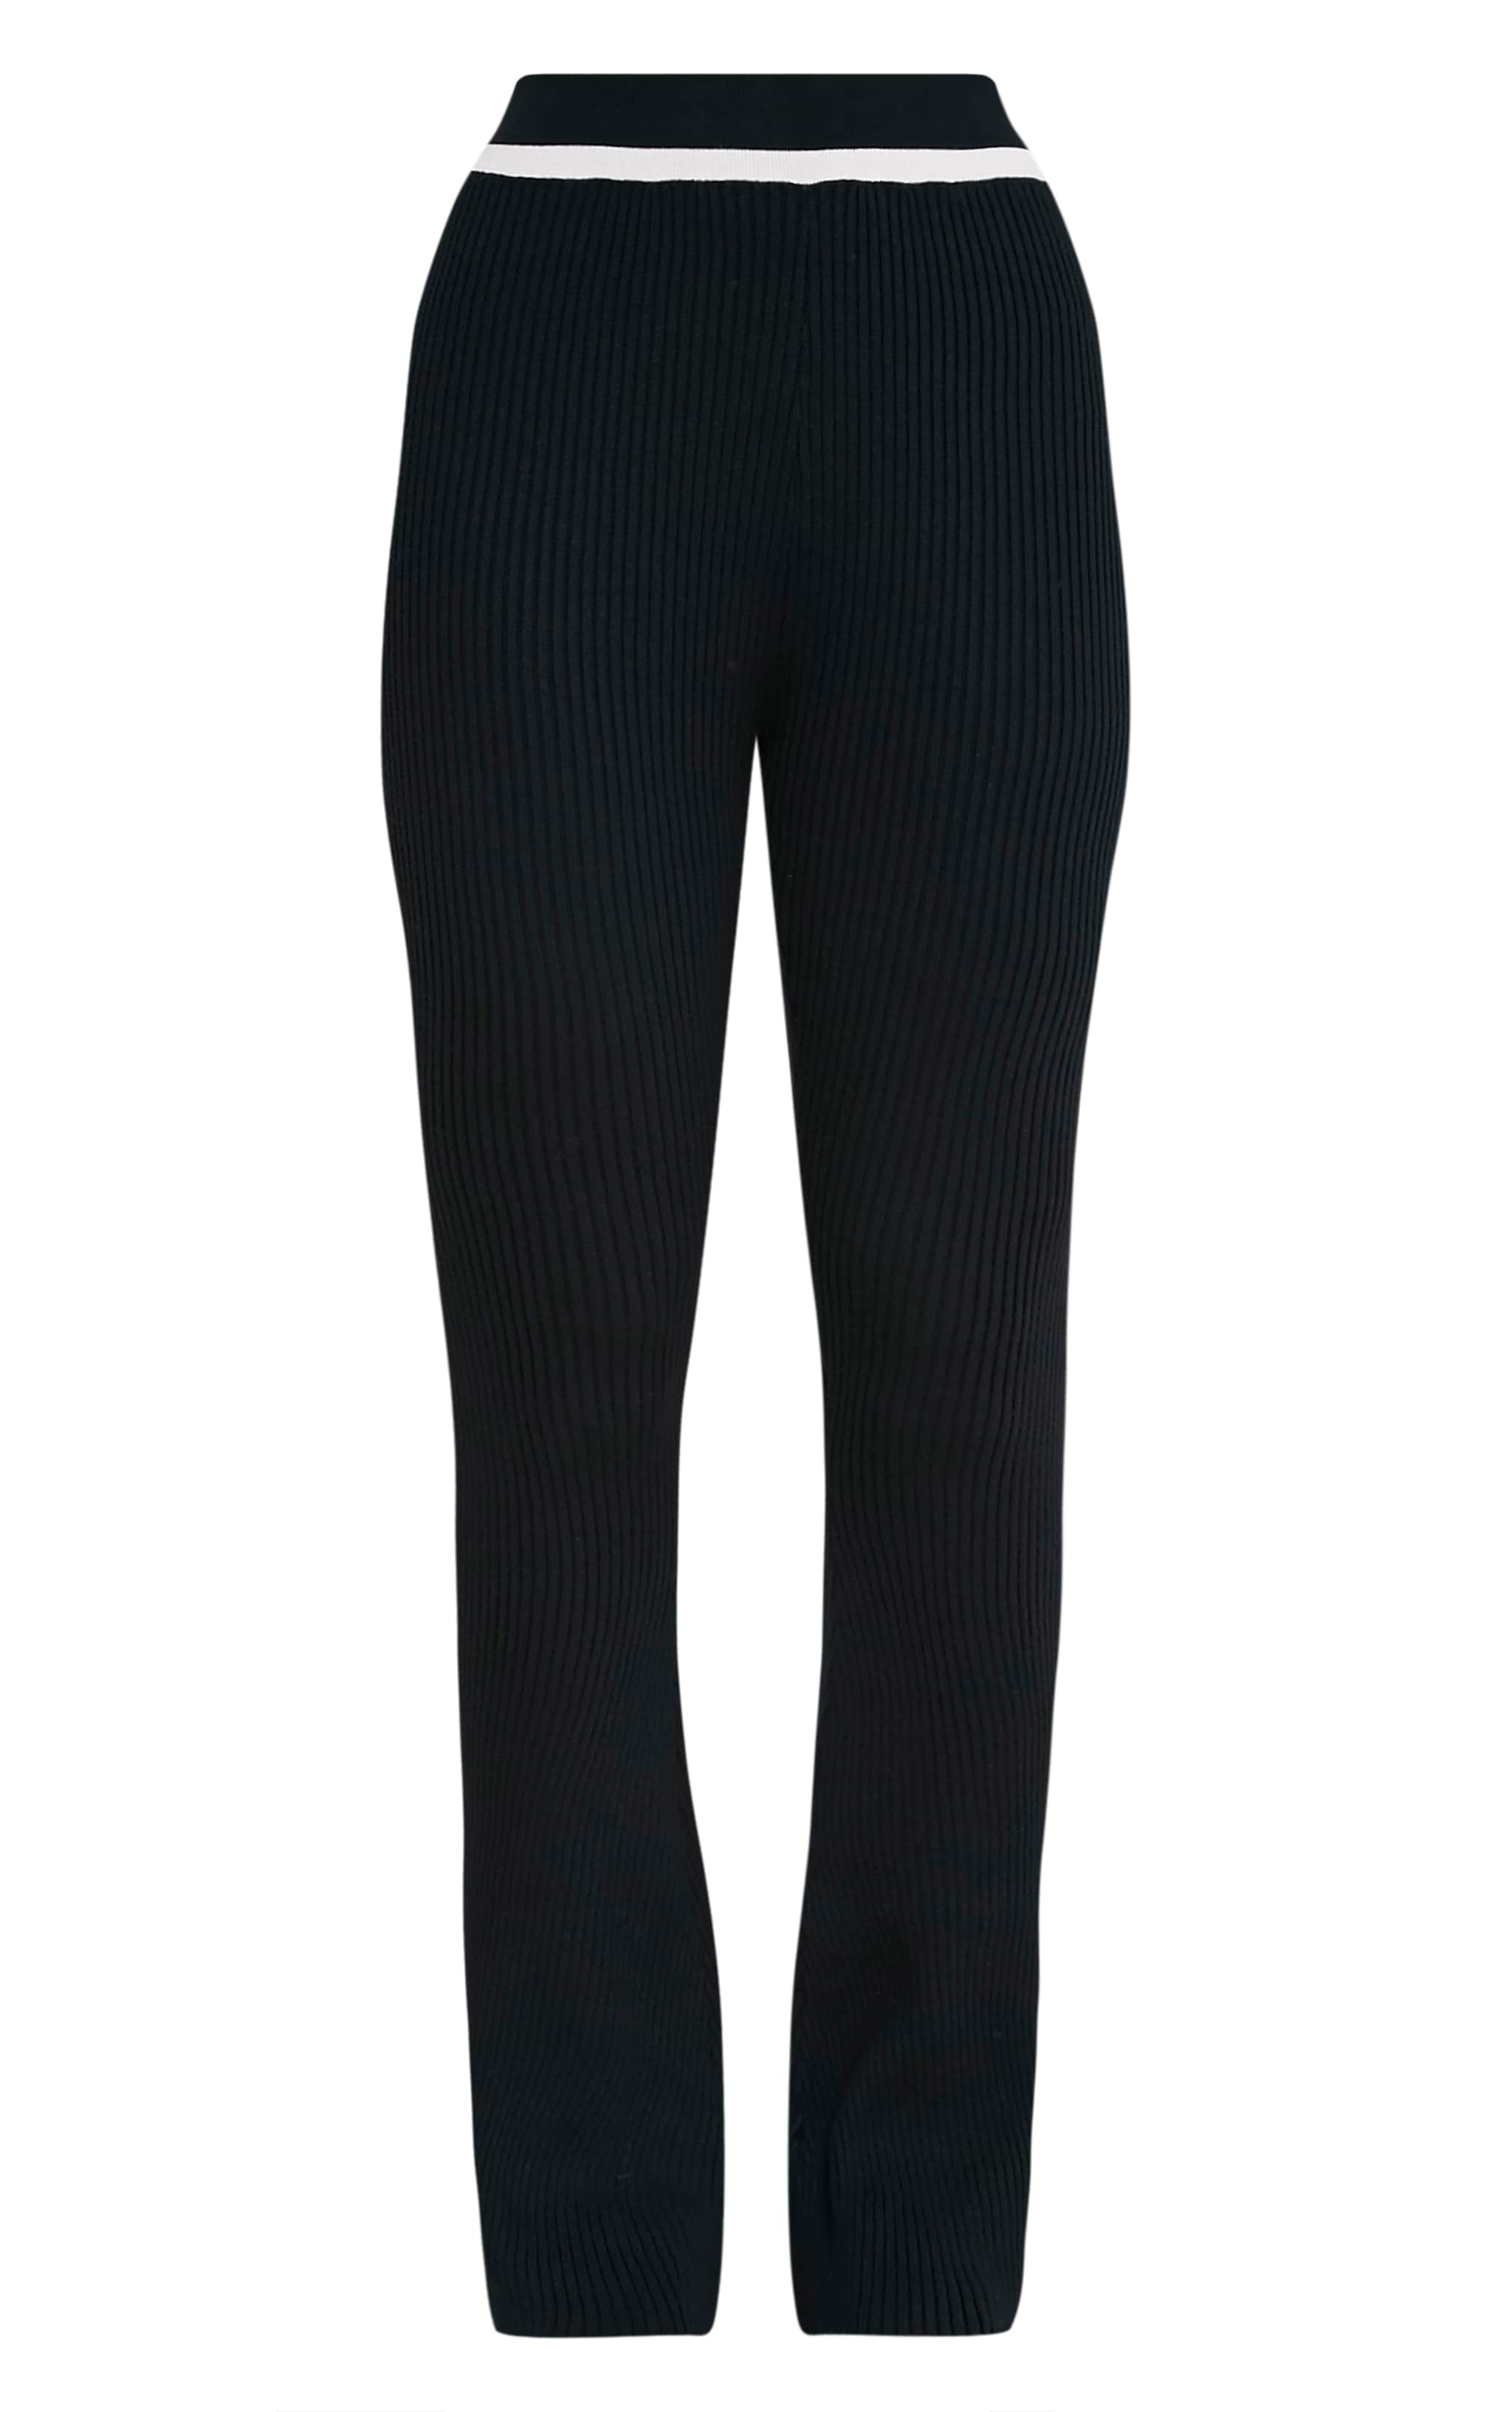 Sufiya Mono Colour Block Knit Ribbed Trousers 3